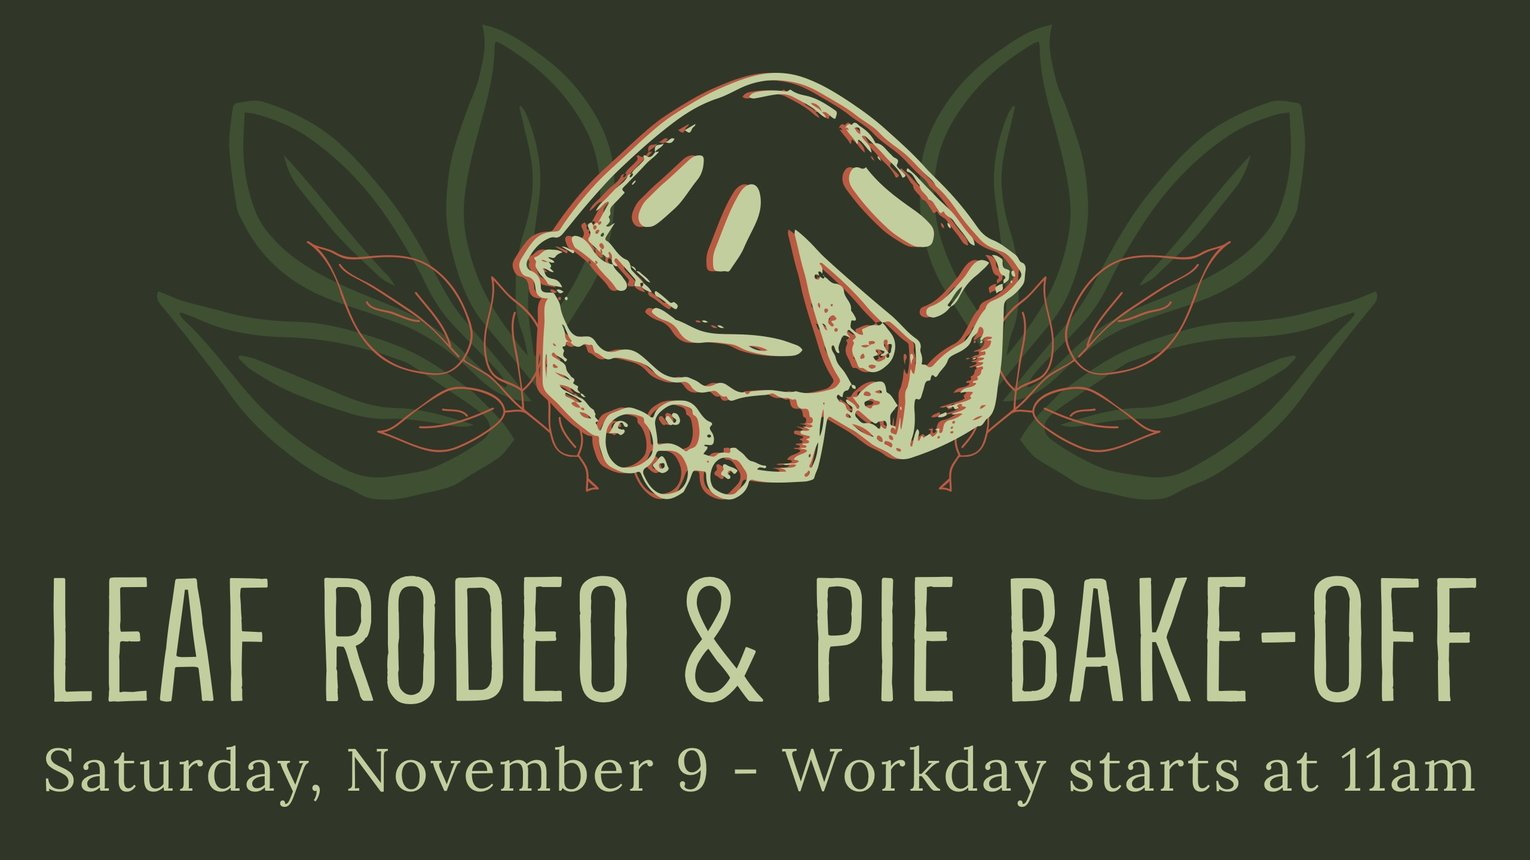 Leaf Rodeo & Pie Bakeoff